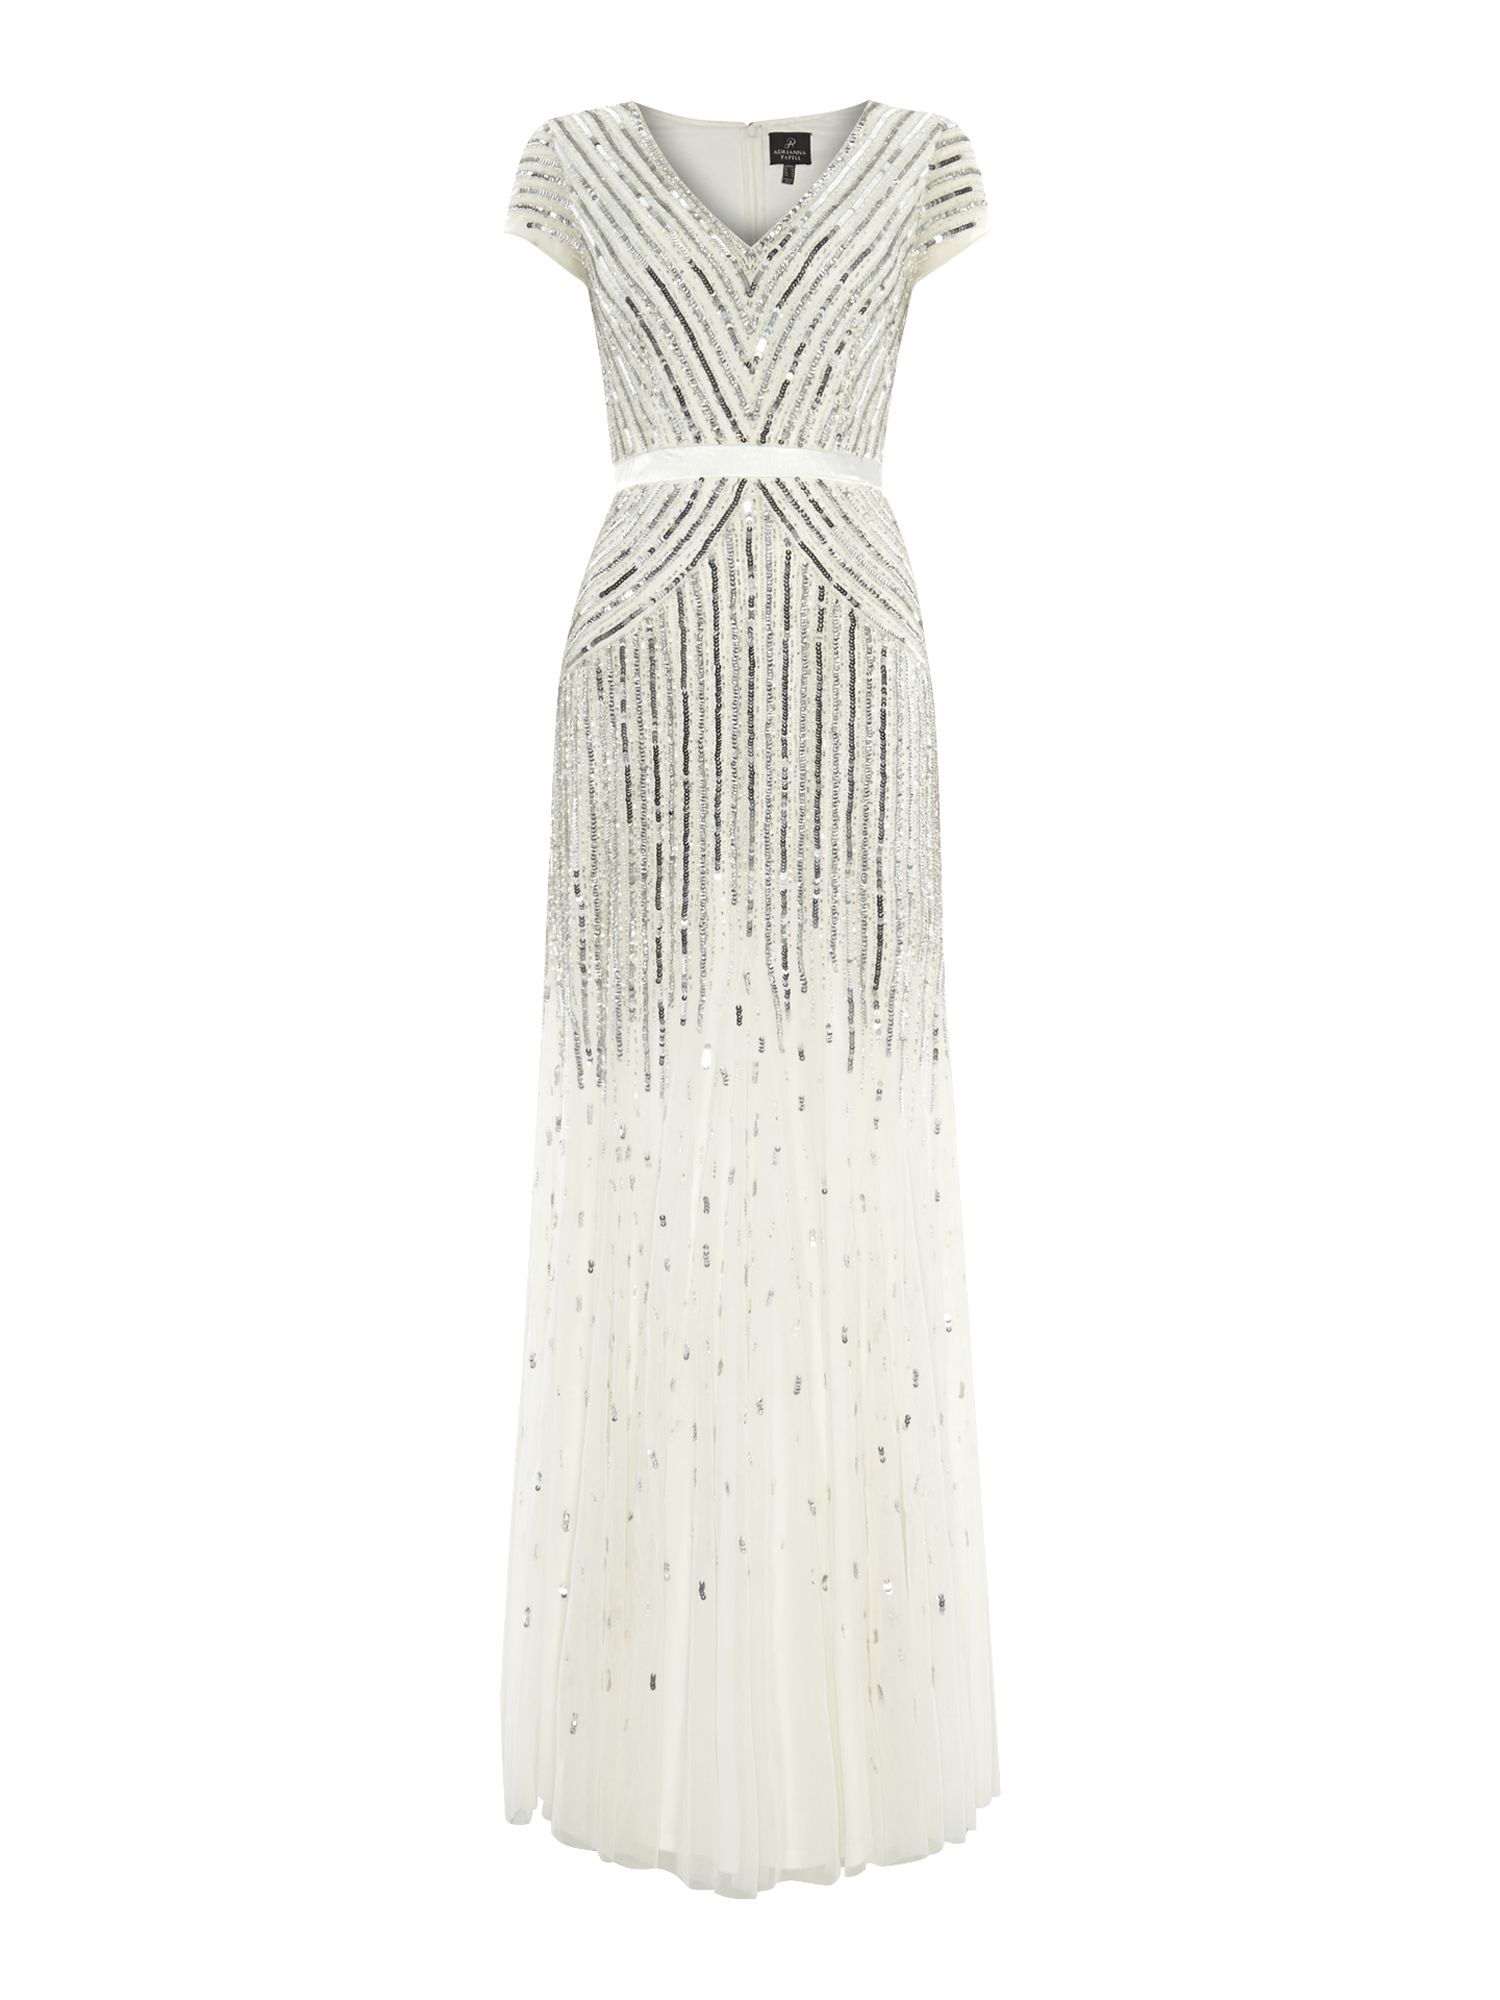 Cap sleeve mesh beaded dress